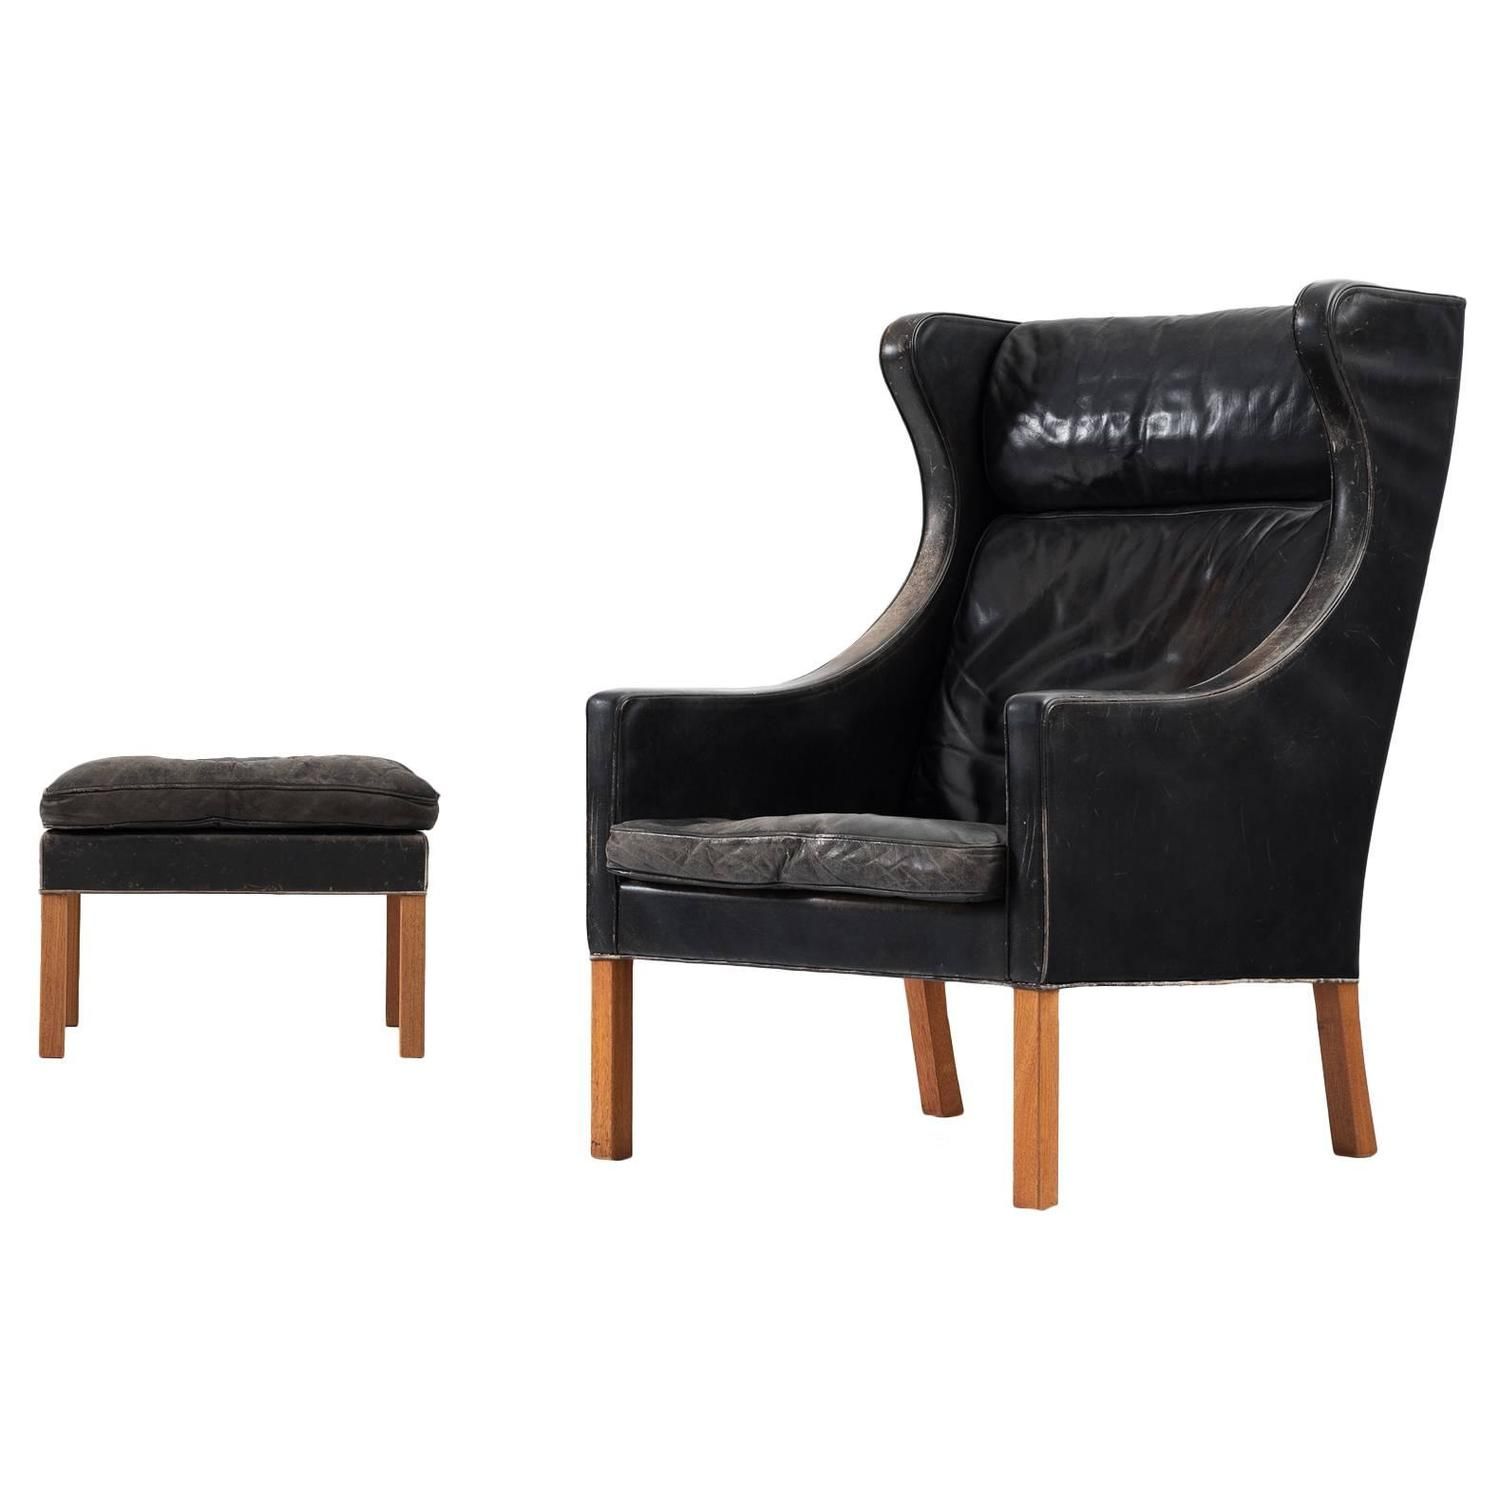 børge mogensen wingback chair and ottoman in black leather for sale